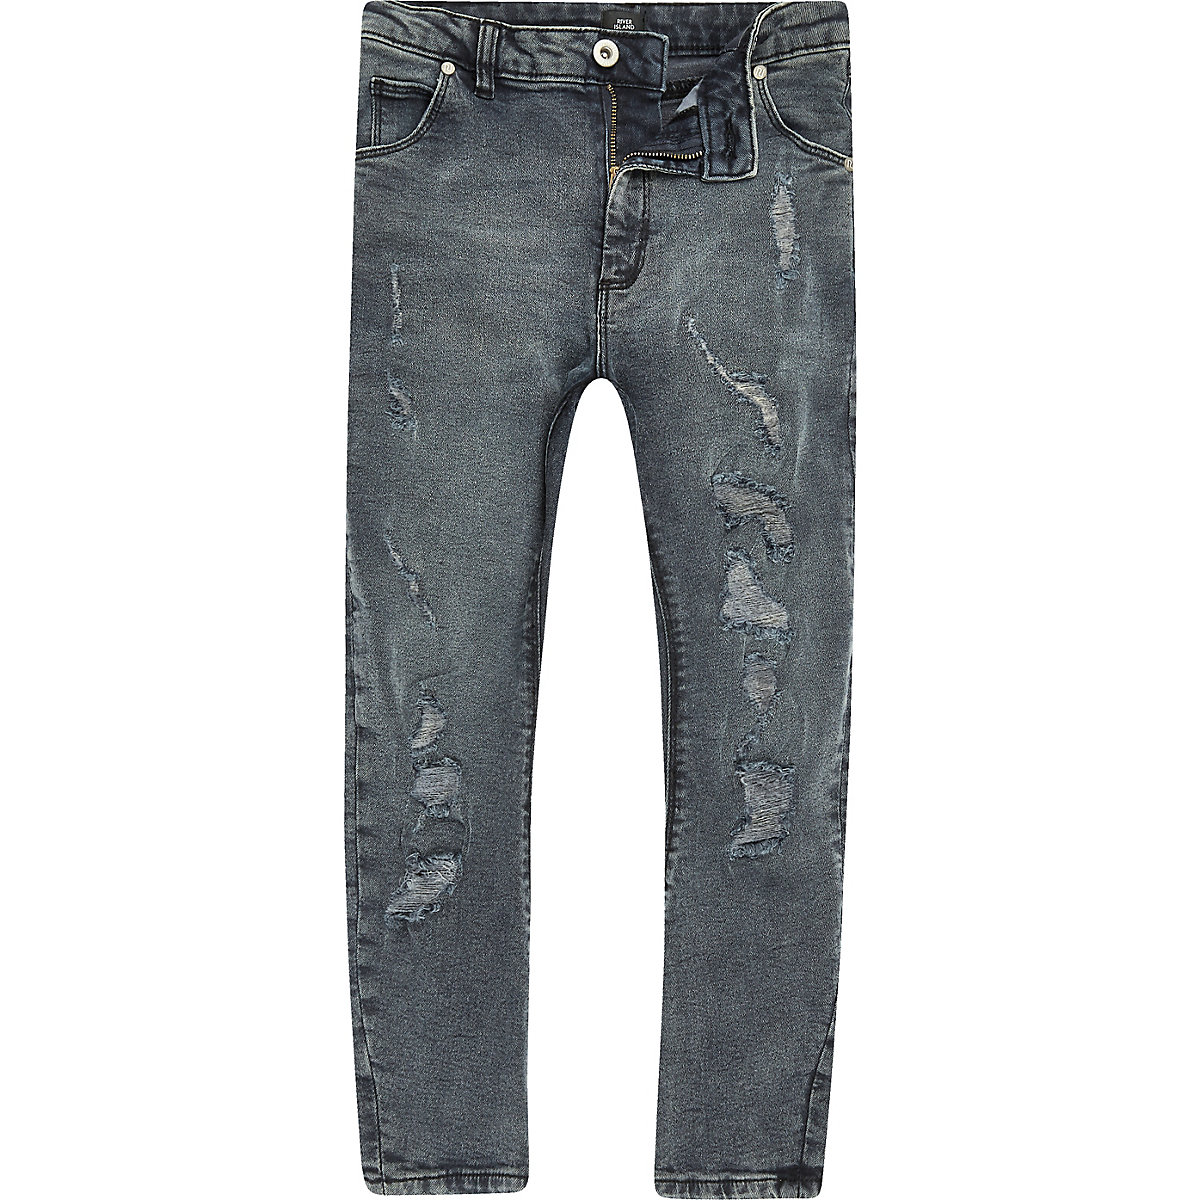 Tony – Dunkle Jeans im Used-Look